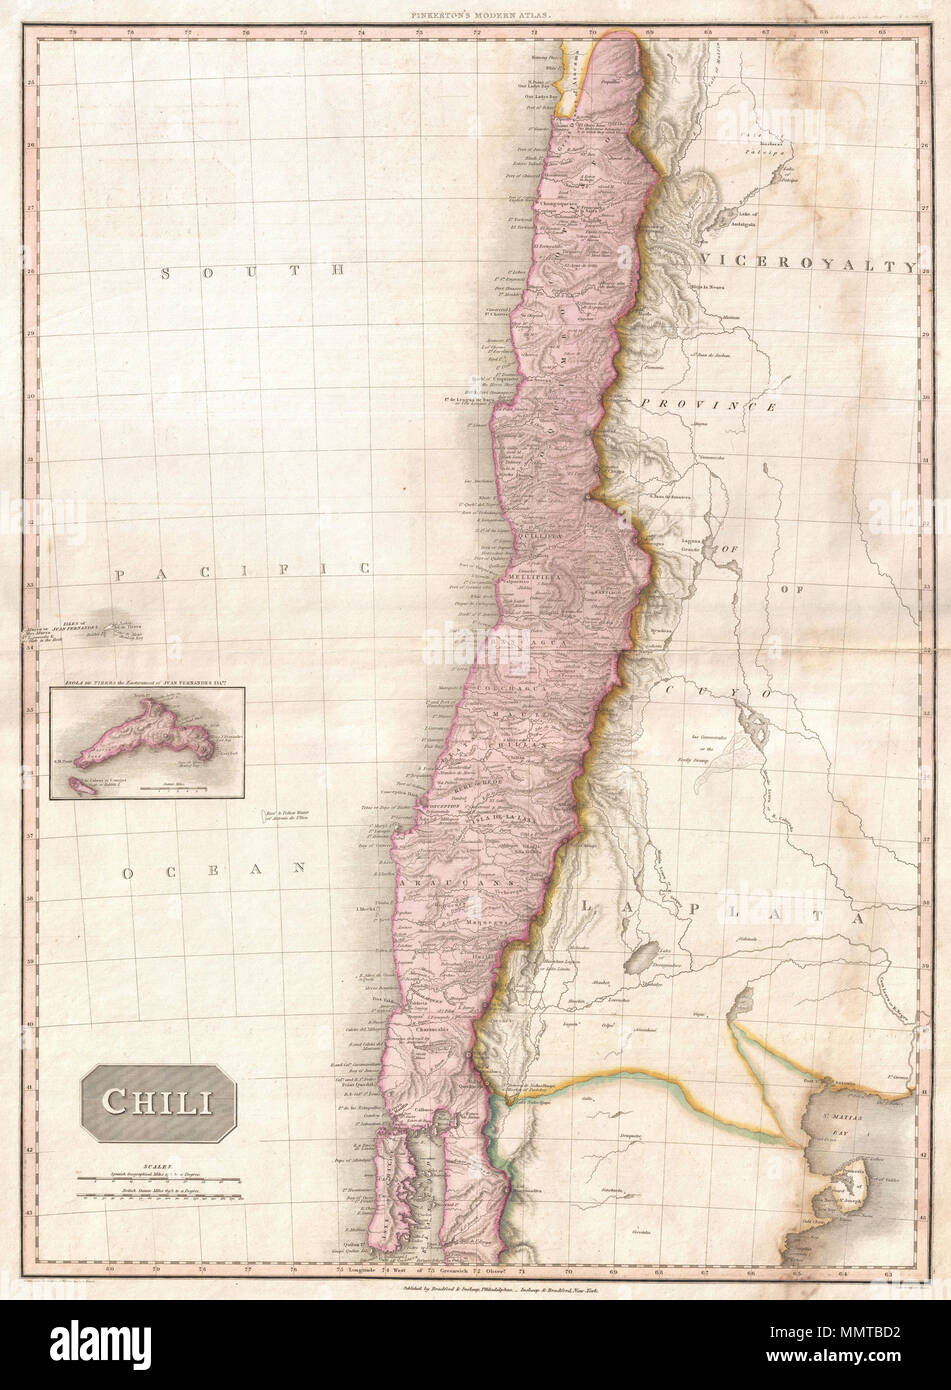 English: This is John Pinkerton's stunning 1818 map of Chile ... on map of south america caribbean sea, map of south america countries, map of south america central america, map of south america cape horn, map of south america mato grosso plateau, map of south america machu picchu, map of south america gran chaco, map of south america falkland islands, map of south america sierra madre mountains, map of south america north america, map of south america la paz, map of south america drake passage, map of south america patagonia, map of south america hawaii, map of south america rio de plata, map of south america french guiana, map of south america haiti, map of south america gulf of mexico, map of south america easter island, map of south america guiana highlands,